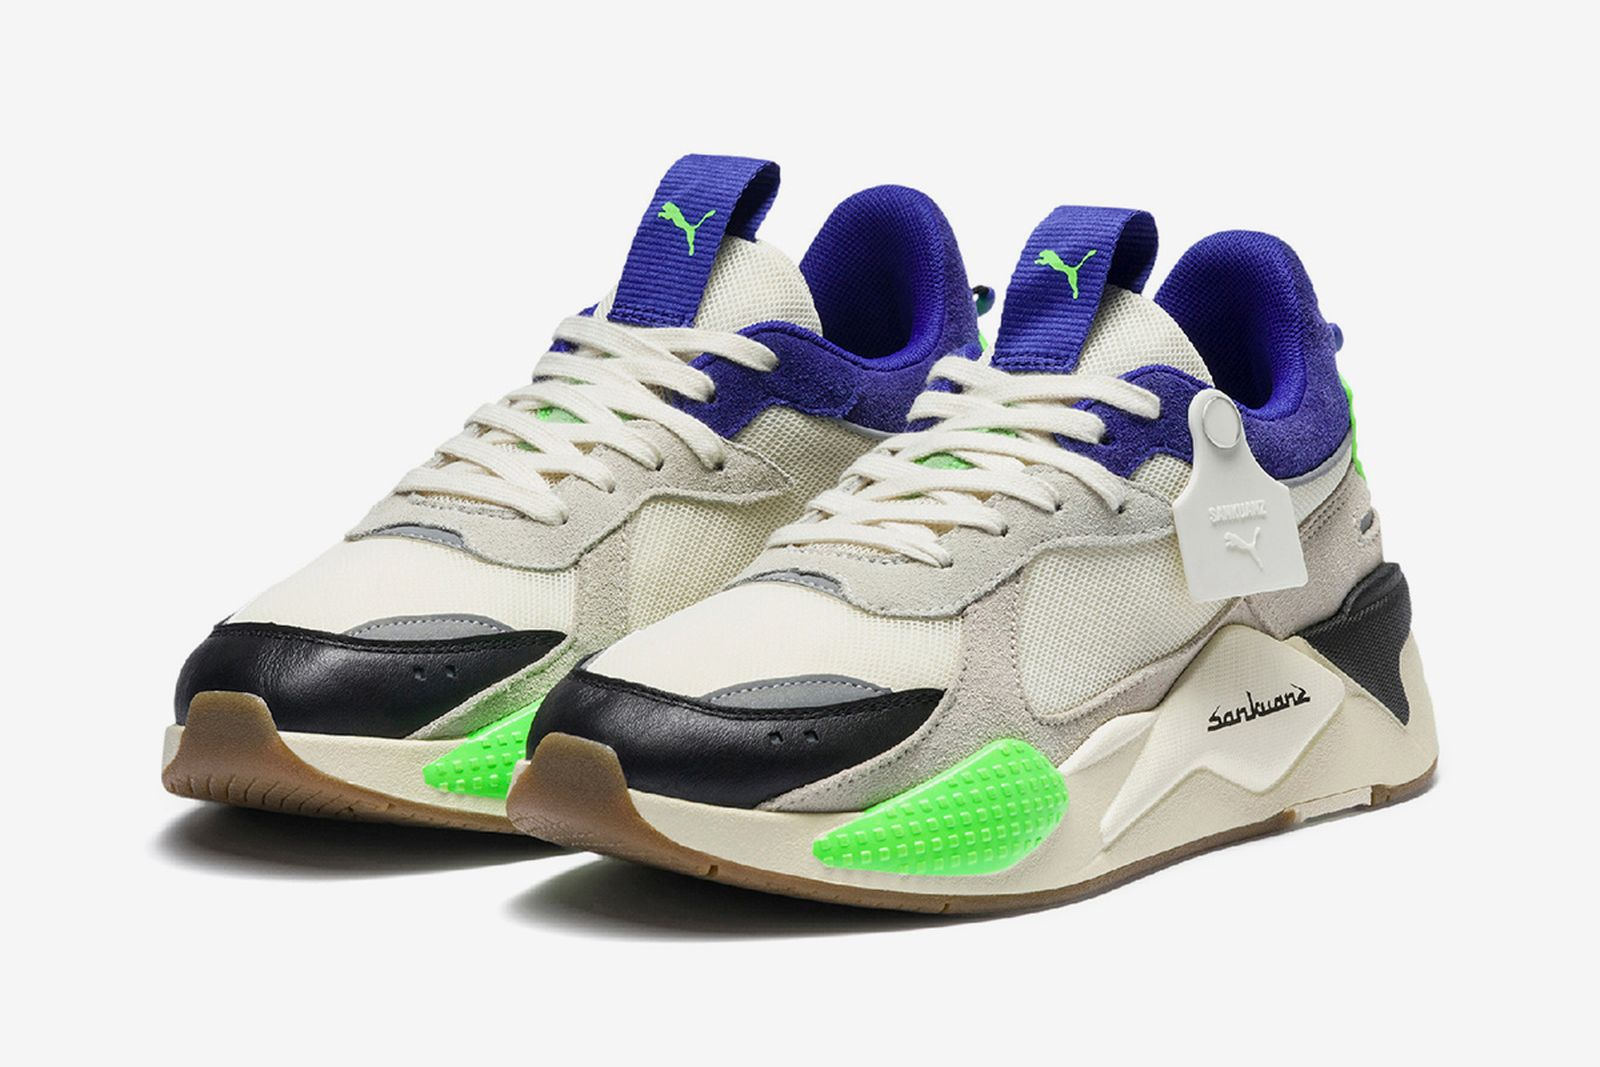 sankuanz puma sneaker collection release date price